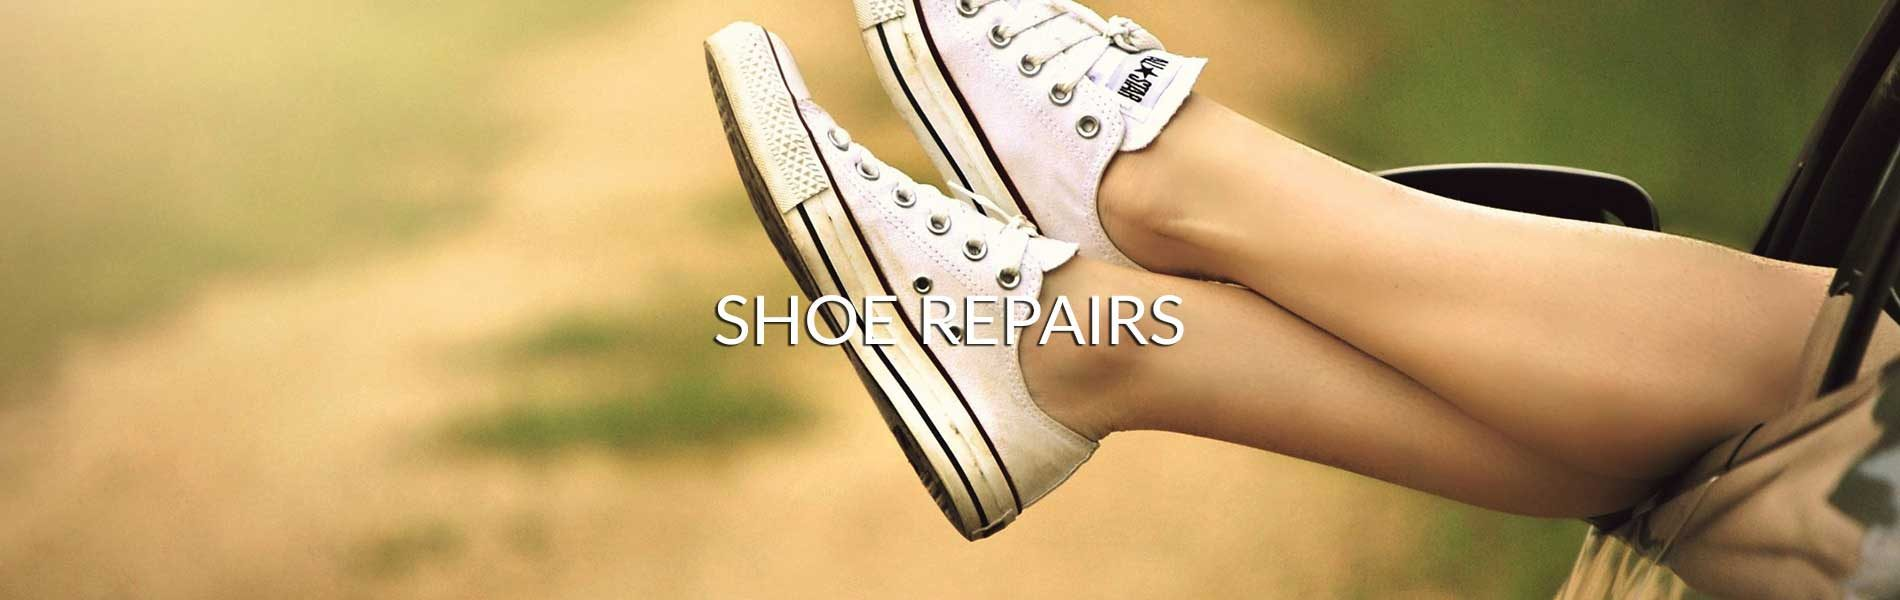 Shoe-Repairs-Services-Slider-Image